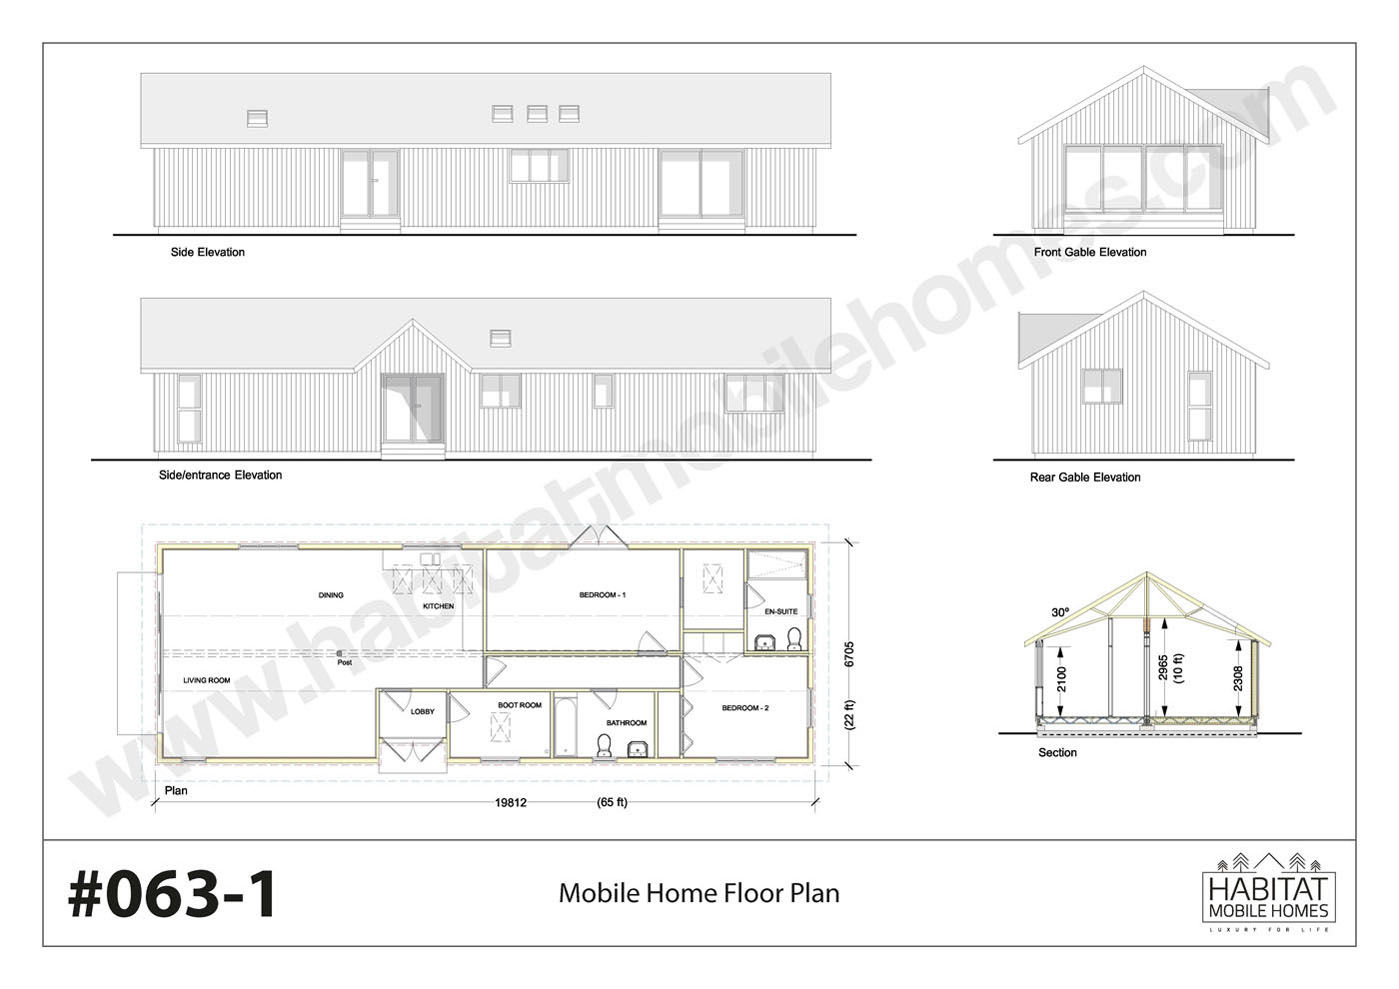 Example Prices Mobile Home Plan 063-1 - Habitat Mobile Homes Ltd on mobile home art, mobile home texture, mobile home pencil, mobile home miniature, mobile home stencil, mobile home project, mobile home charm, mobile home black and white, mobile home space, mobile home sculpture, mobile home australia, mobile home inspiration, mobile home photography, mobile home flash, mobile home travel, mobile home work, mobile home light, mobile home skins, mobile home glass, mobile home comedy,